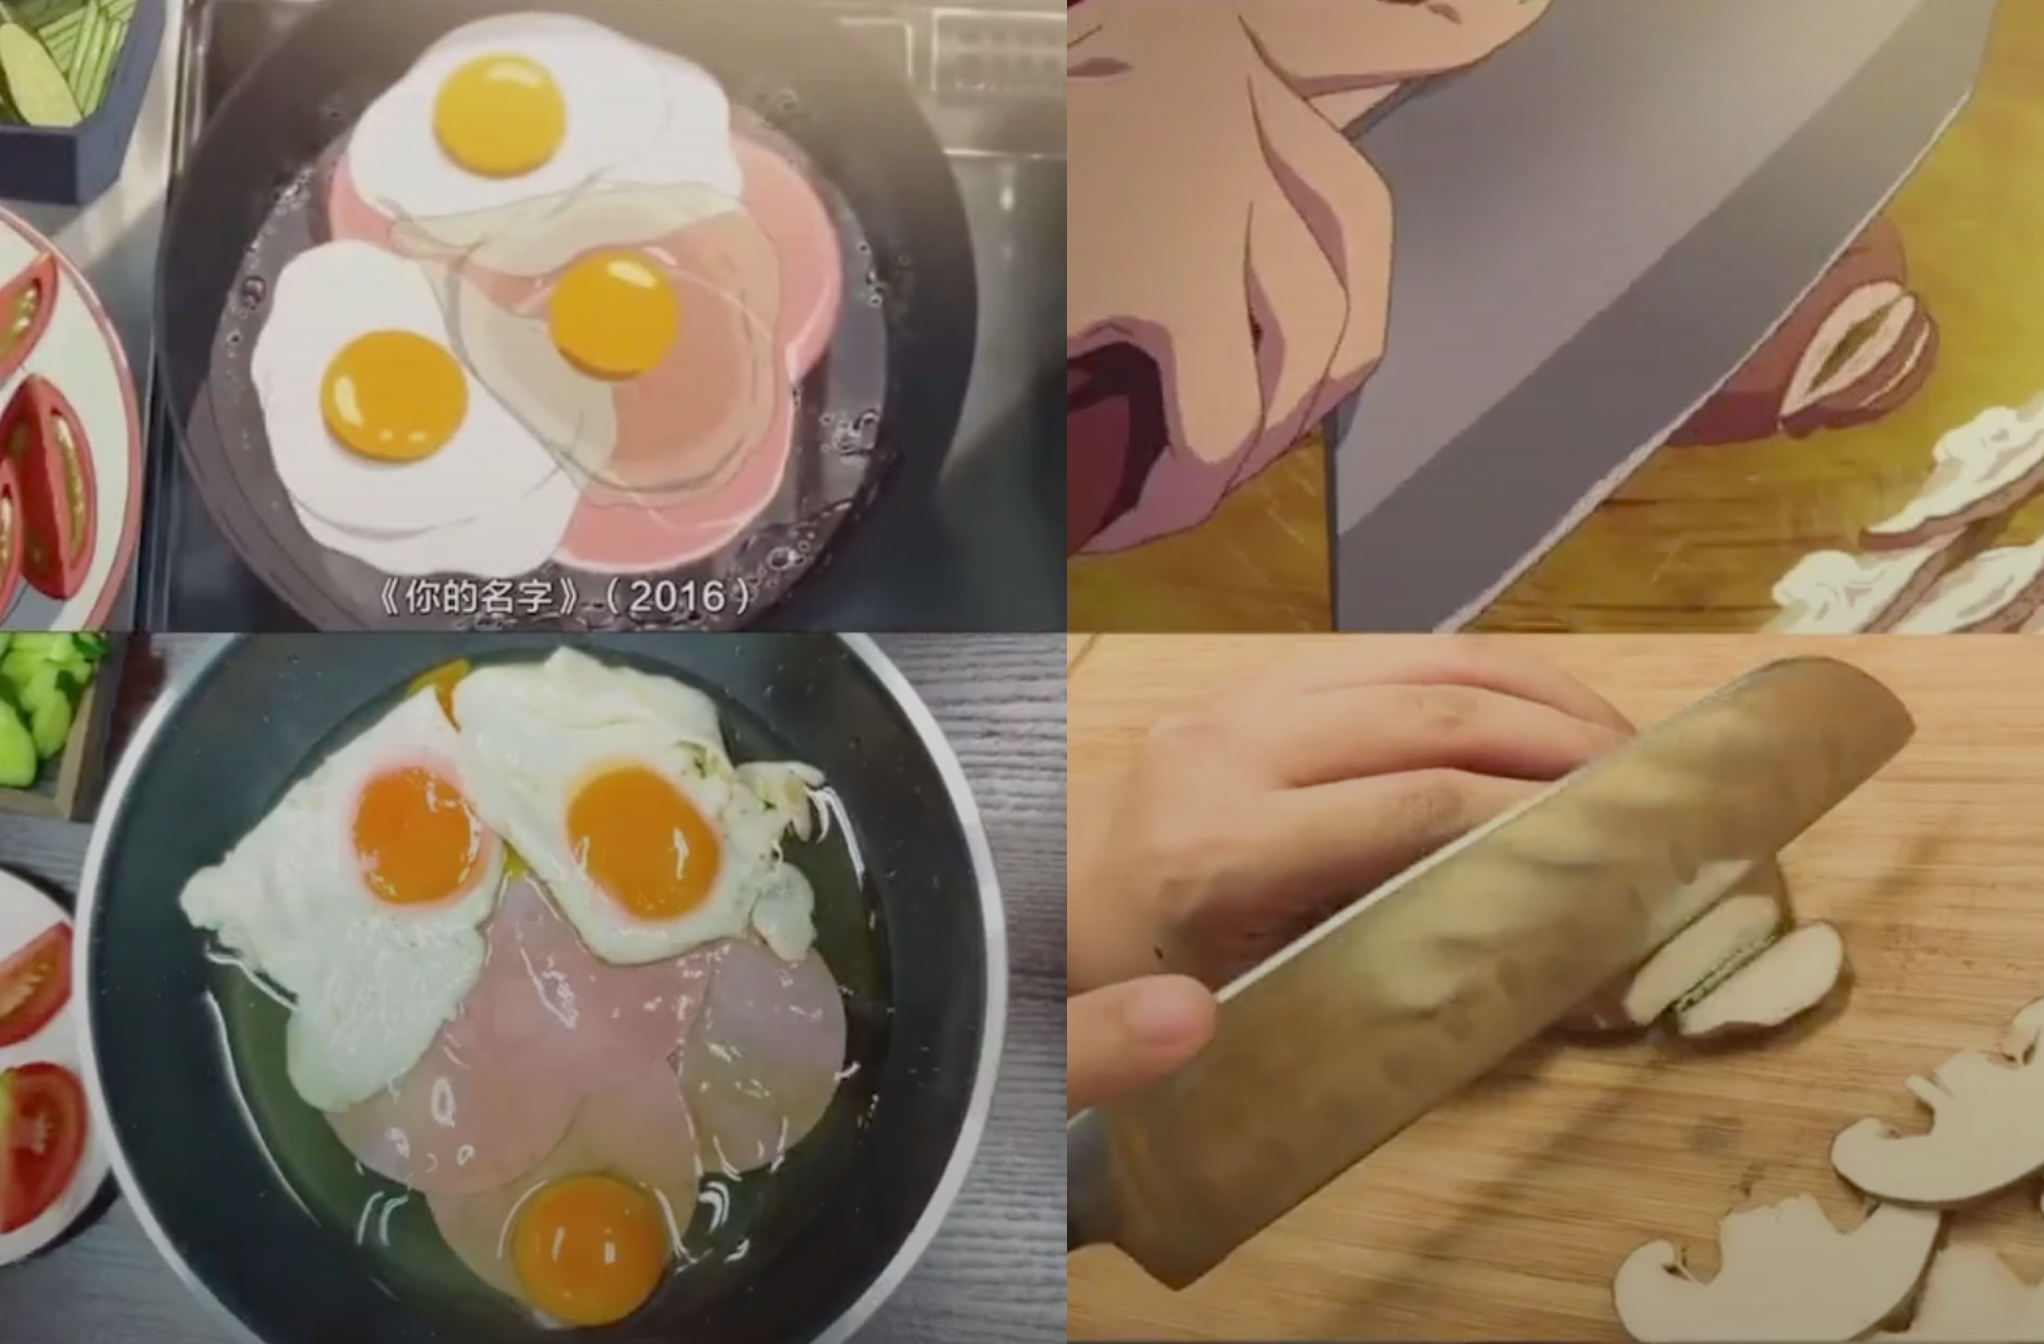 These Serene TikToks Recreating Anime Food Scenes Will Make You Happy and Hungry